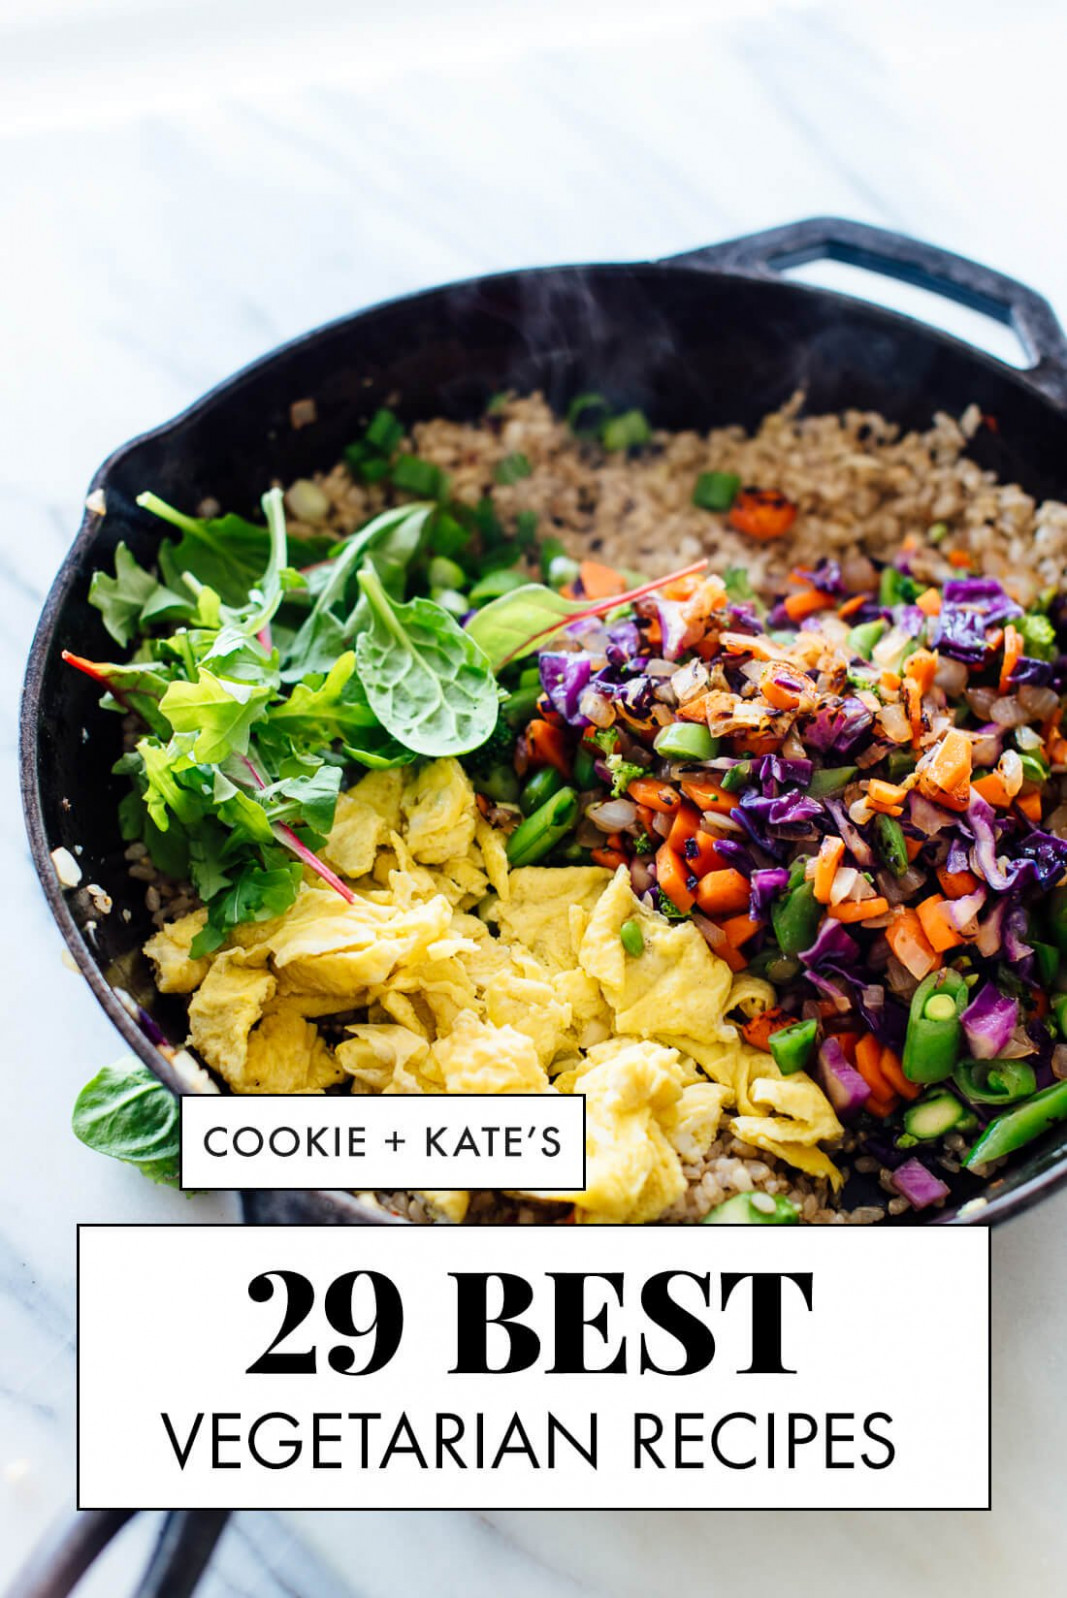 10 Best Vegetarian Recipes - Cookie and Kate - cheap easy kid friendly vegetarian recipes